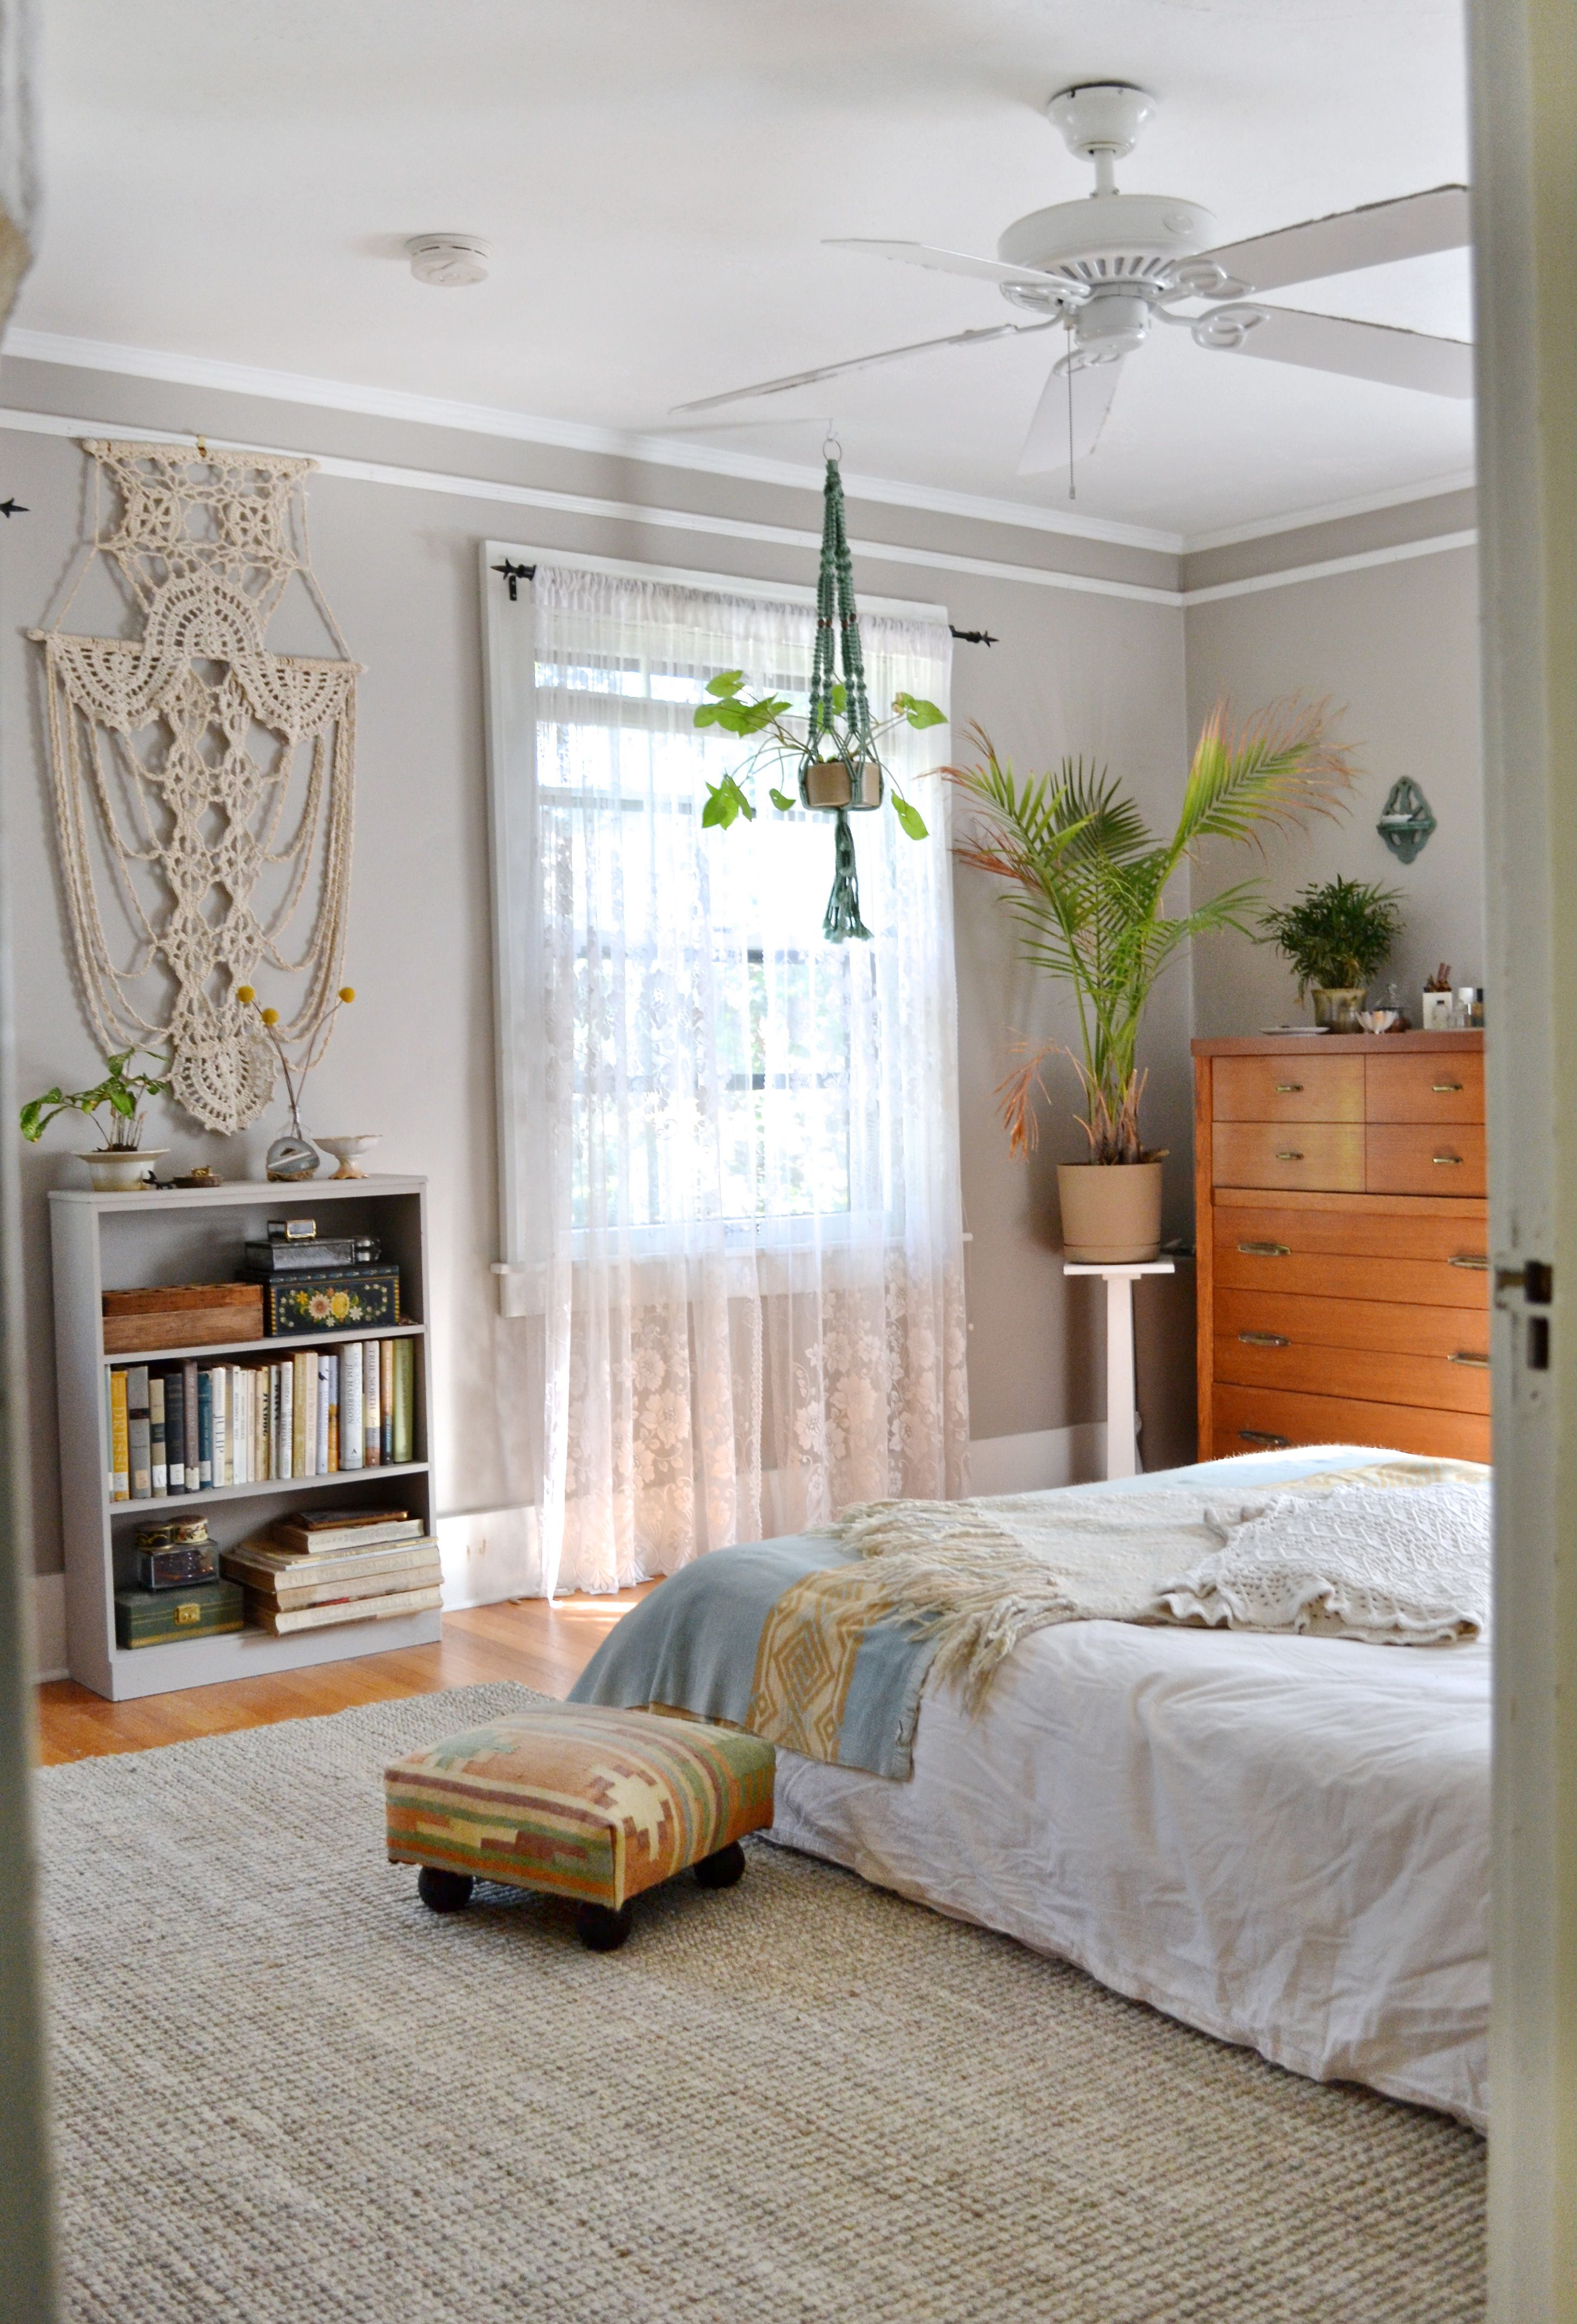 Paint Colors That Match This Apartment Therapy Photo Sw 9183